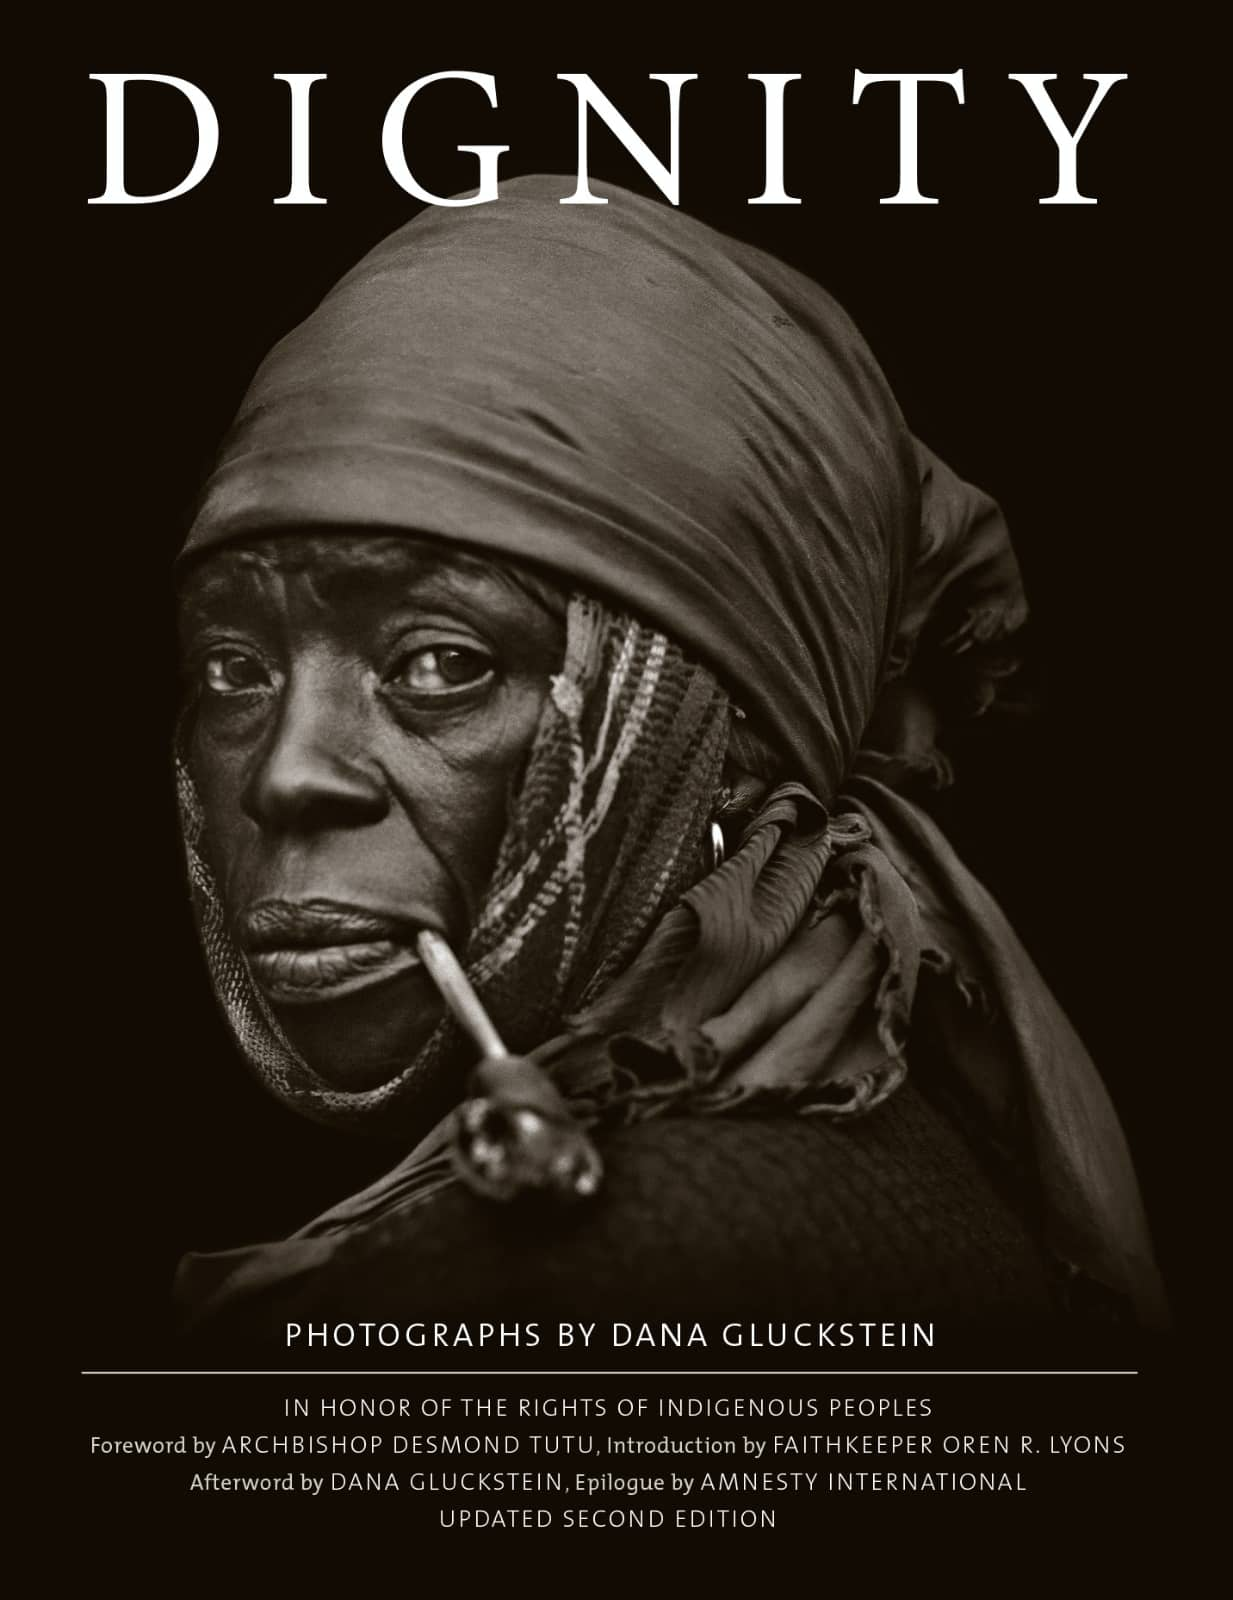 Dignity - In Honor of the the Rights of Indigenous Peoples, Updated Second Edition - Dana Gluckstein, isbn 9781576879221